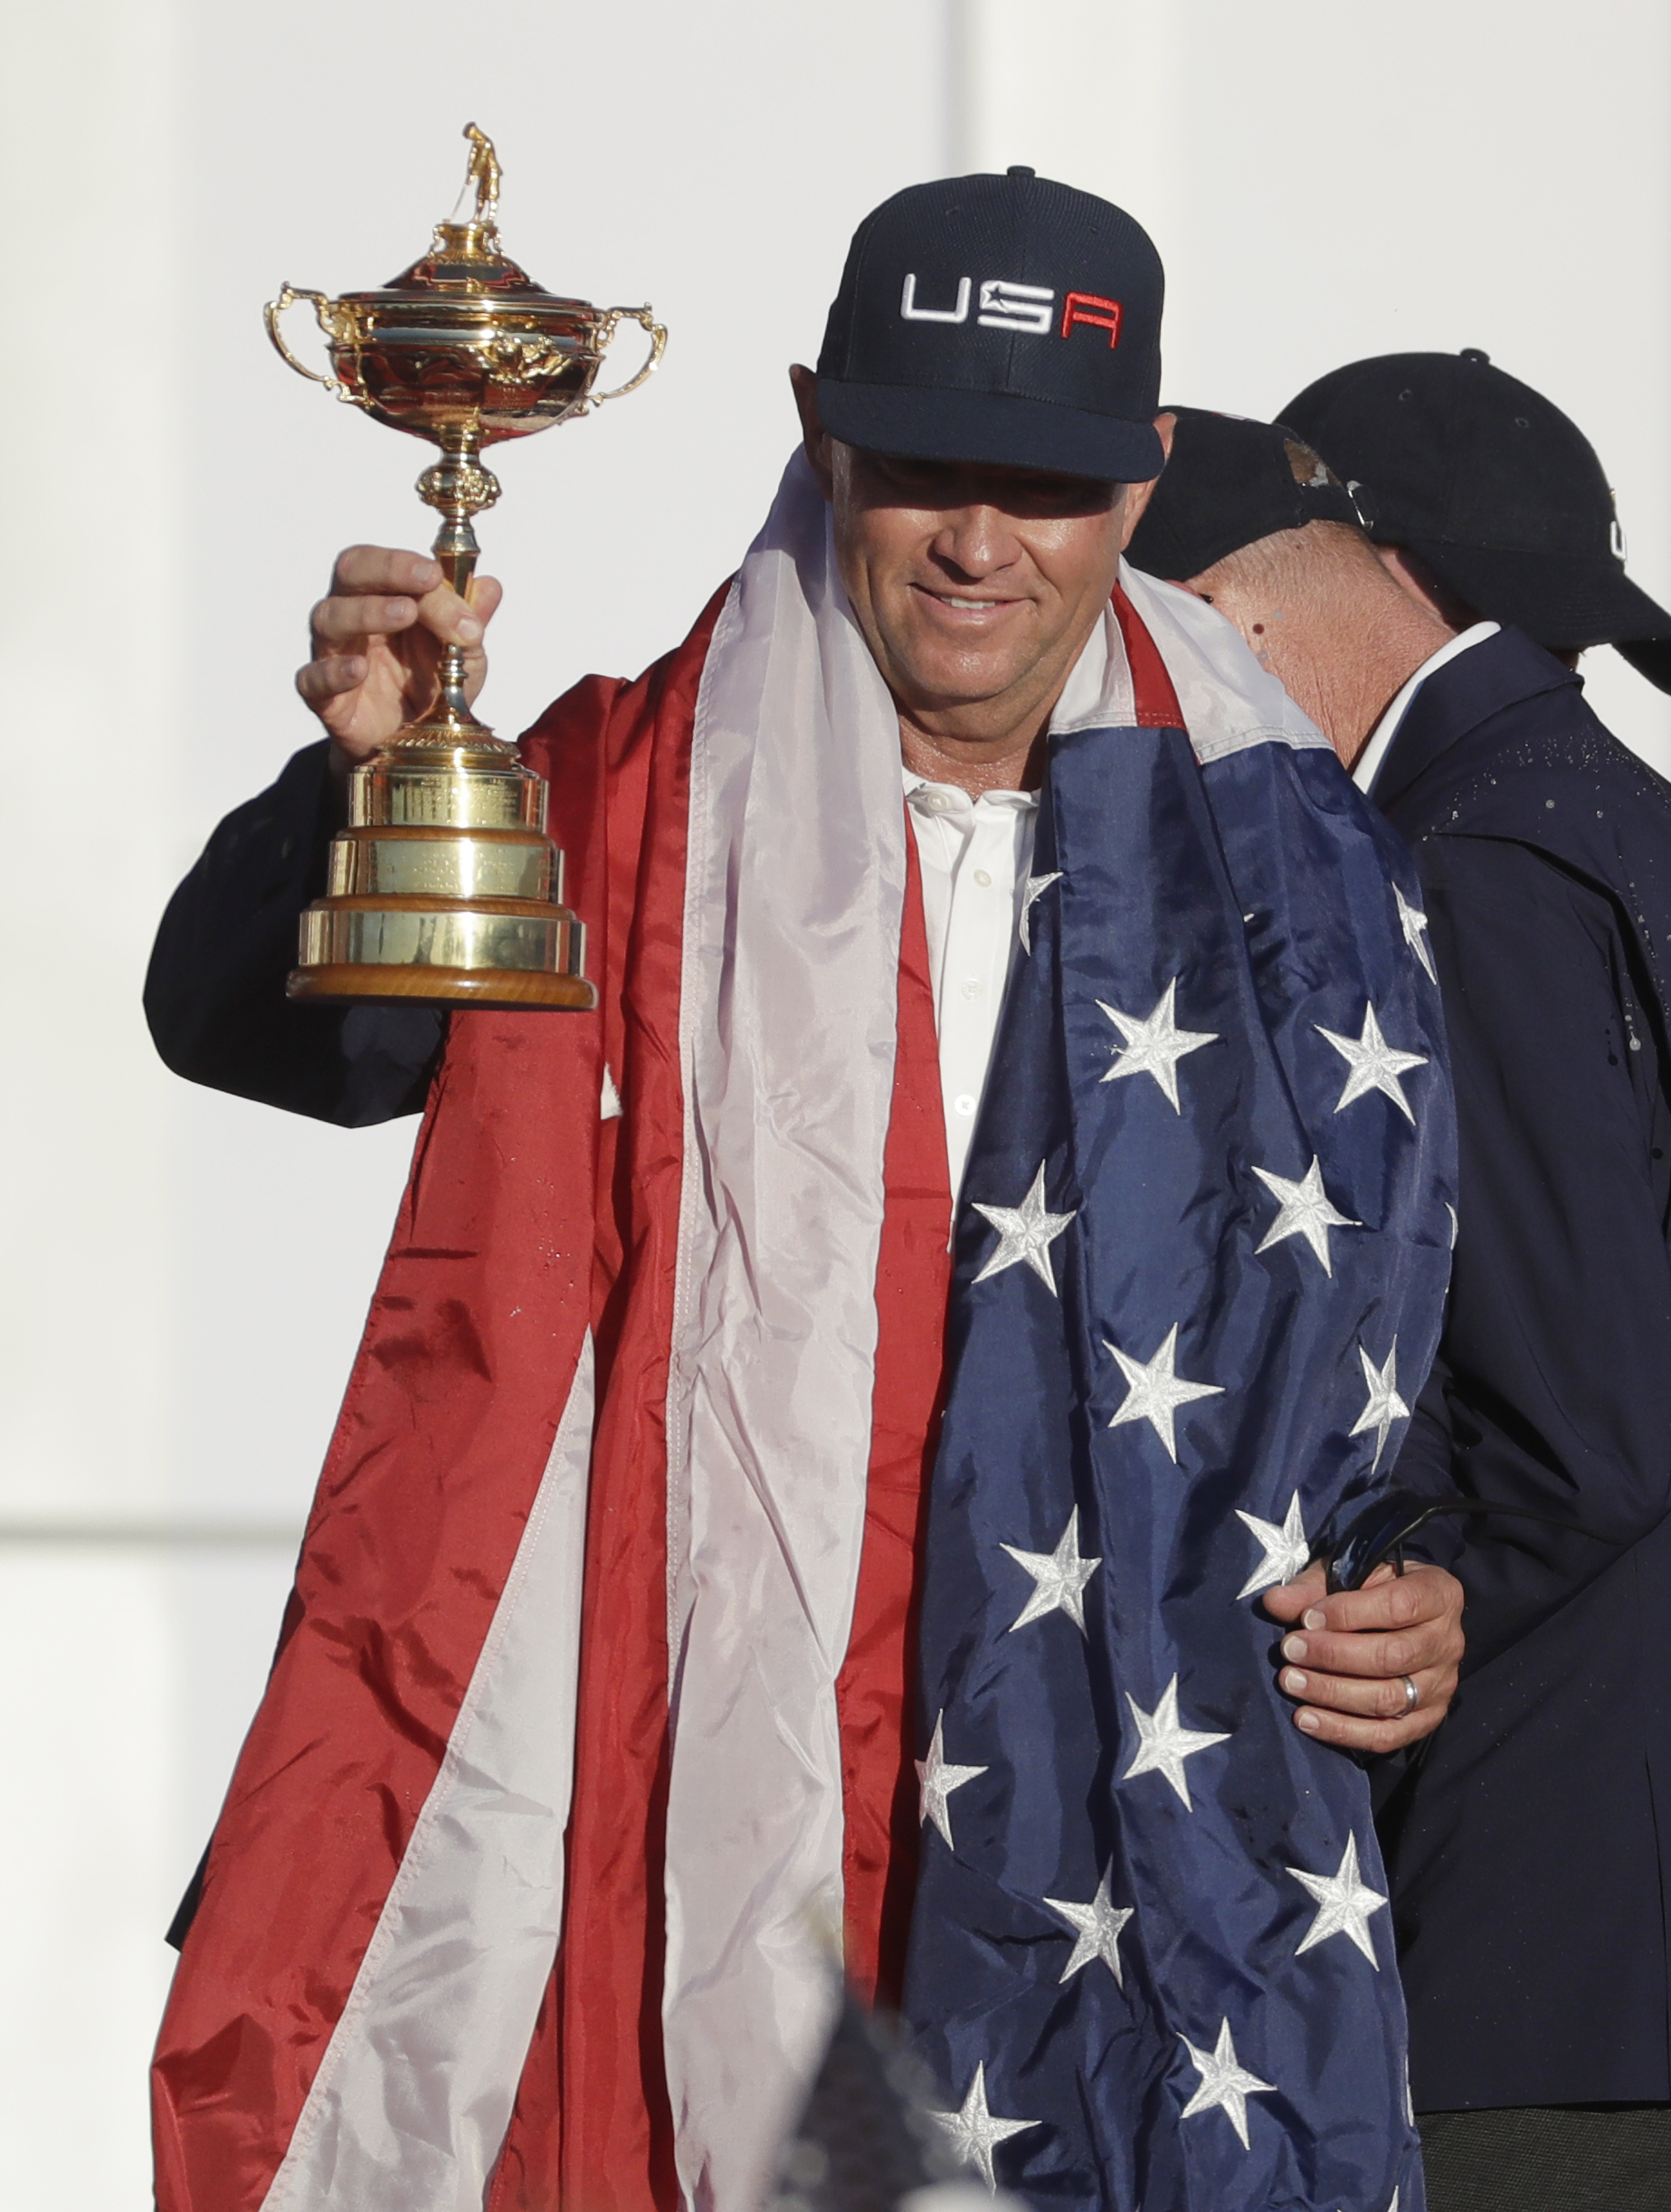 United States captain Davis Love III holds up the Ryder Cup during the closing ceremony of the golf tournament Sunday, Oct. 2, 2016, at Hazeltine National Golf Club in Chaska, Minn. (AP Photo/Chris Carlson)